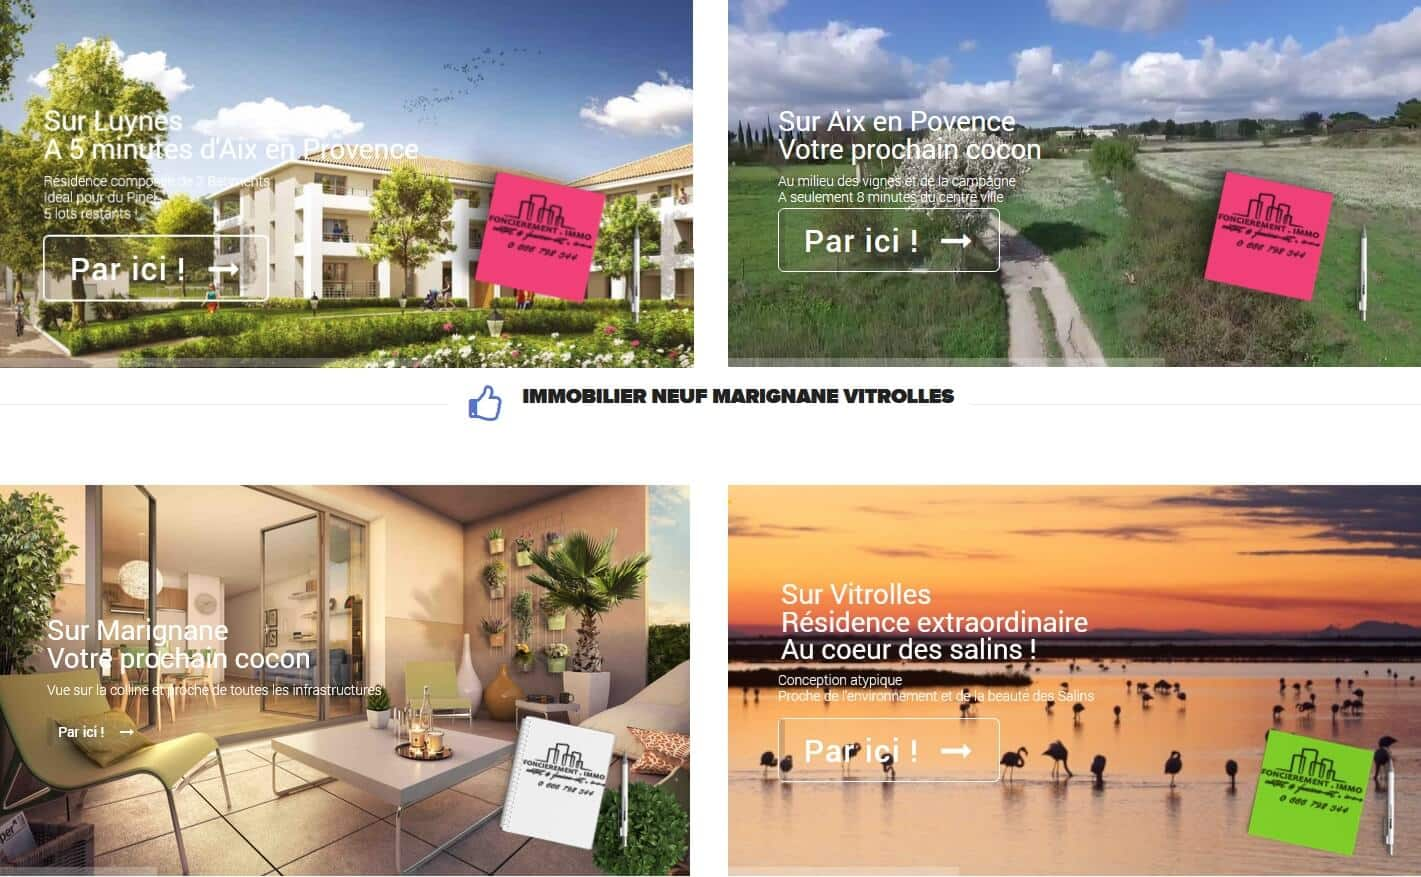 Immobilier neuf achat acquisition foncierement immo for Projet achat immobilier